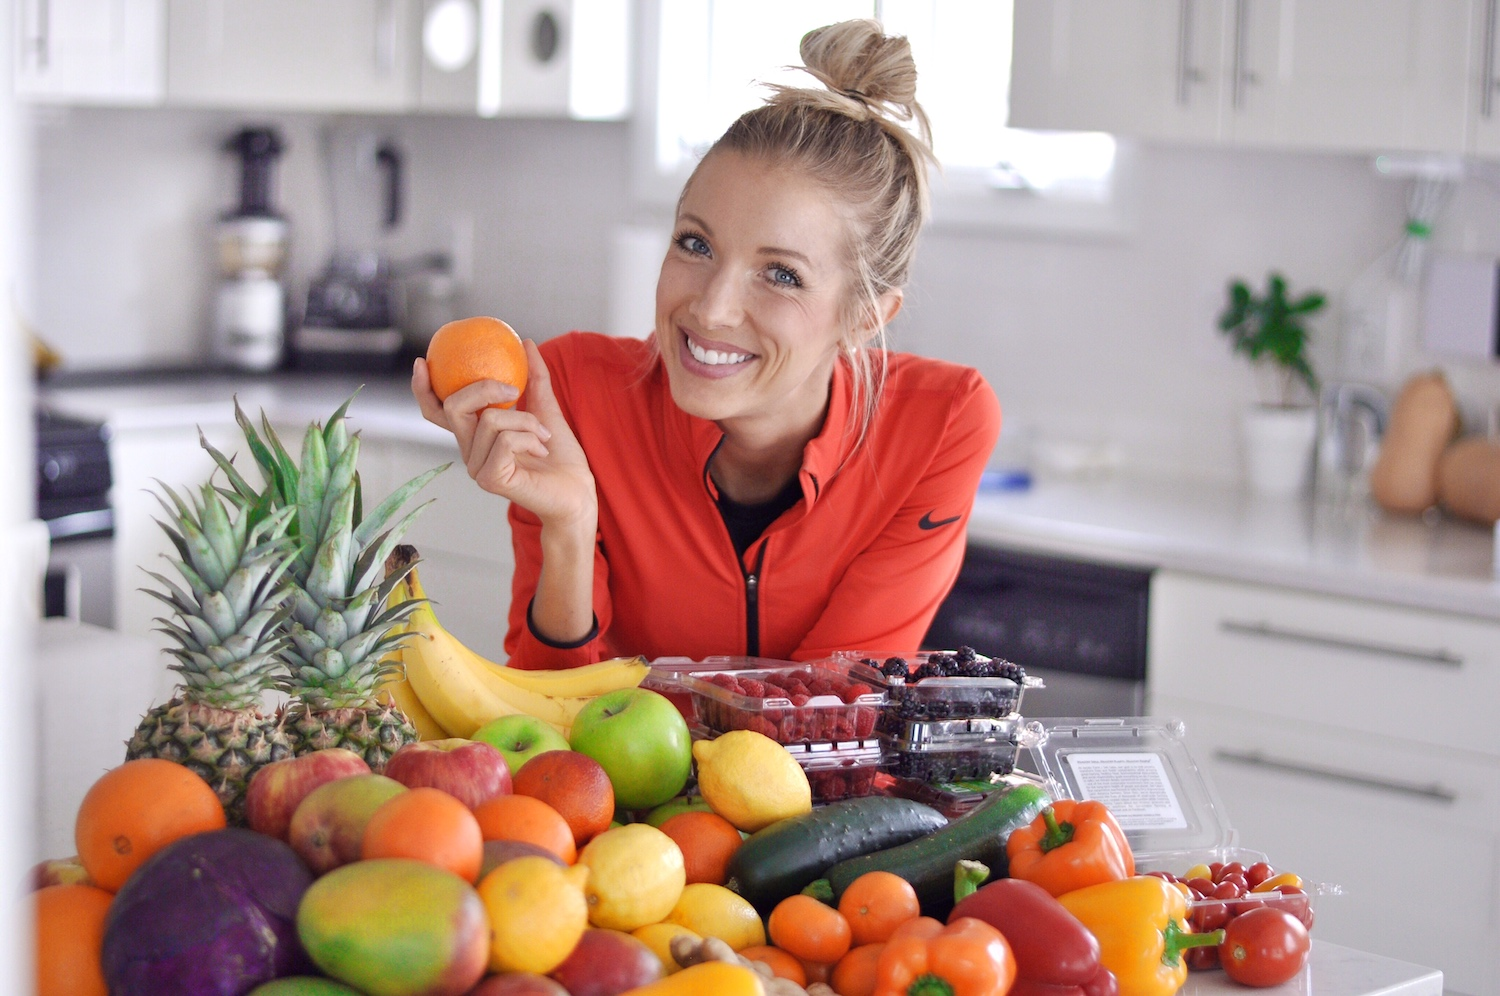 Erin Stanczyk | Lifestyle Design | eat.move.rest. | WHAT I EAT IN A DAY: RAW 'TIL 4 STYLE